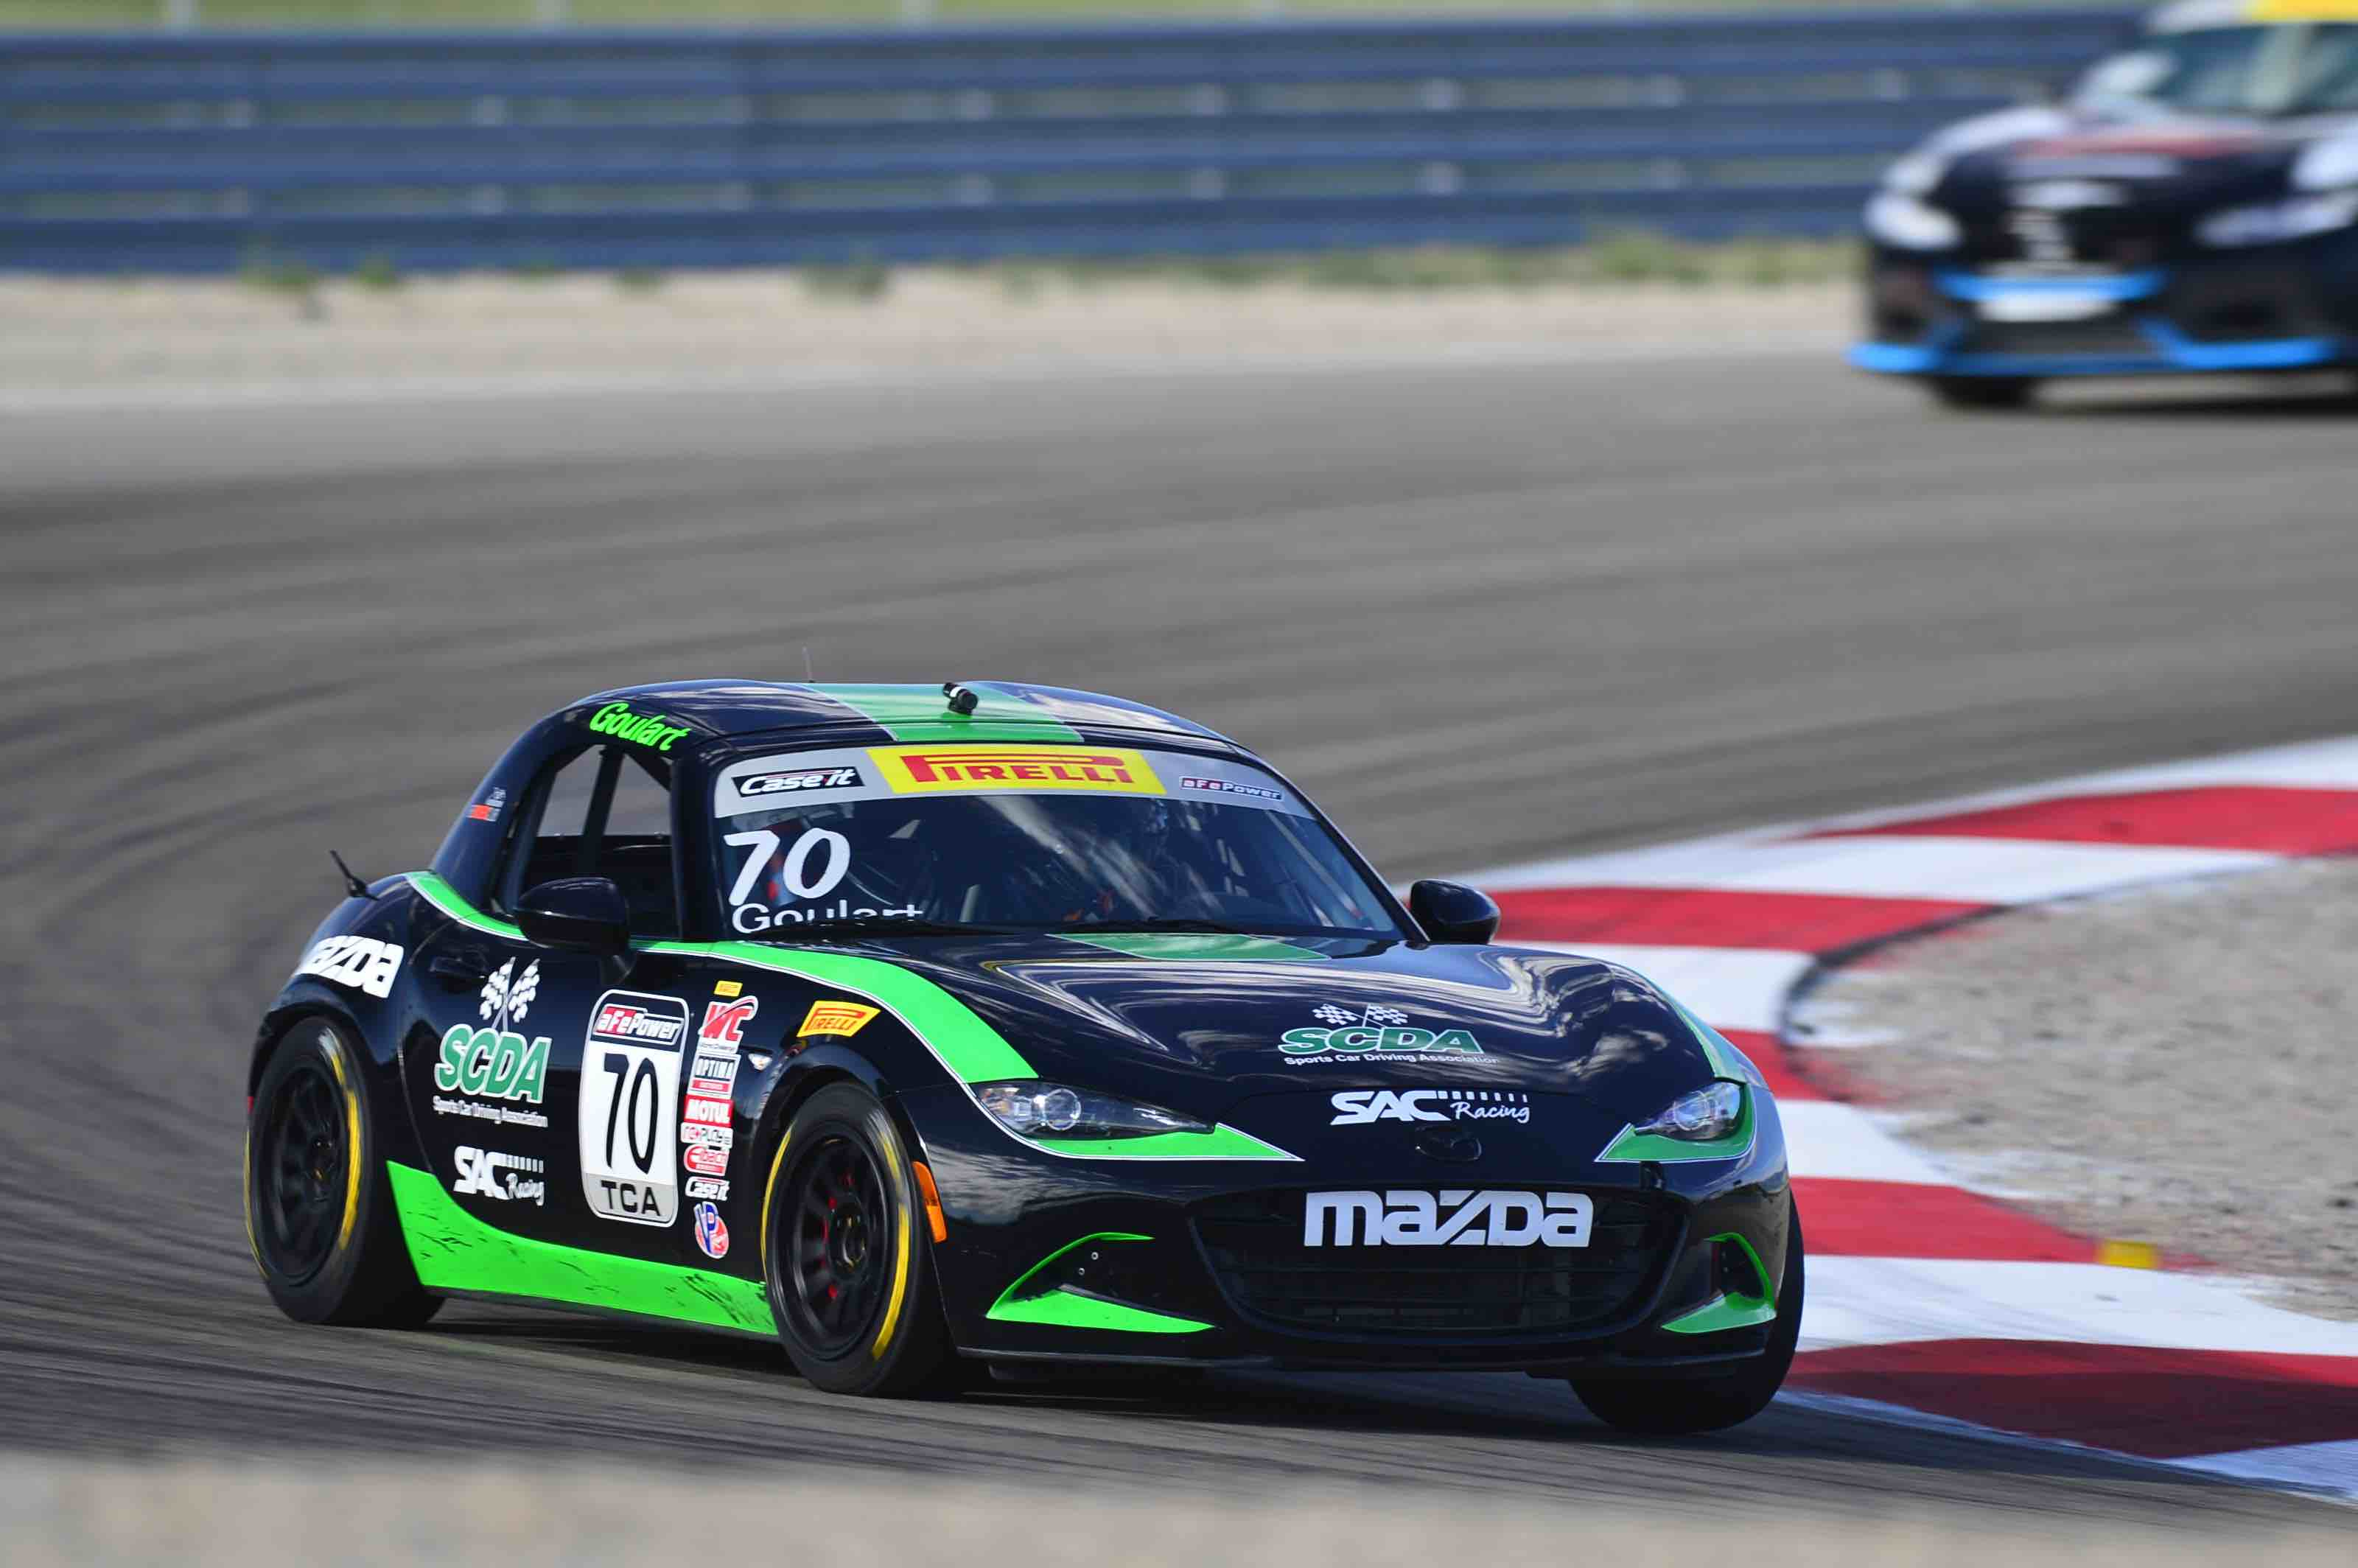 Mazda Global MX-5 Cup Car- SCDA Elivan Goulart